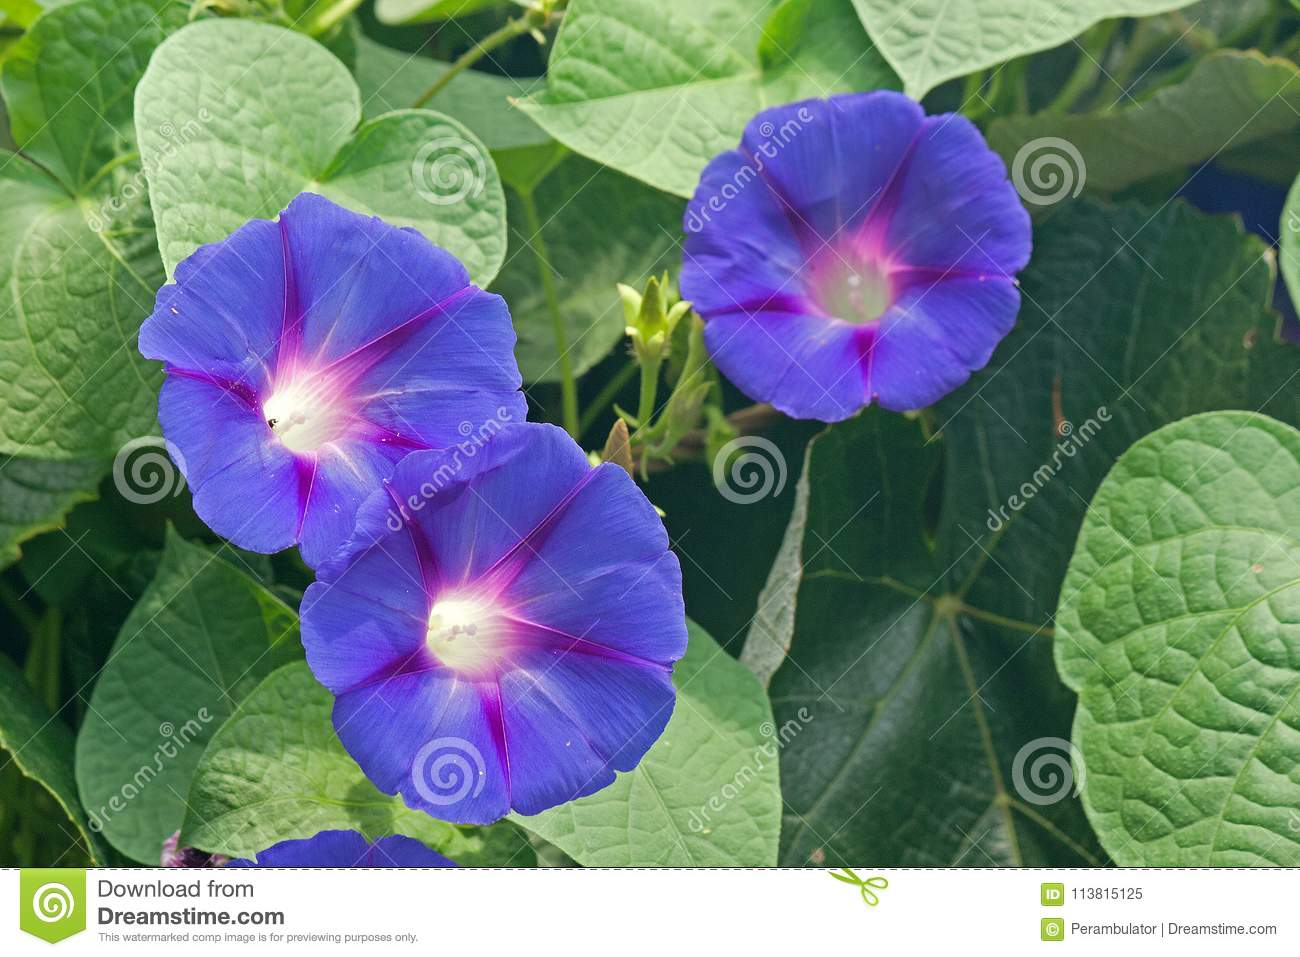 BLUE MORNING GLORY FLOWERS ENTWINED WITH GRAPE VINE